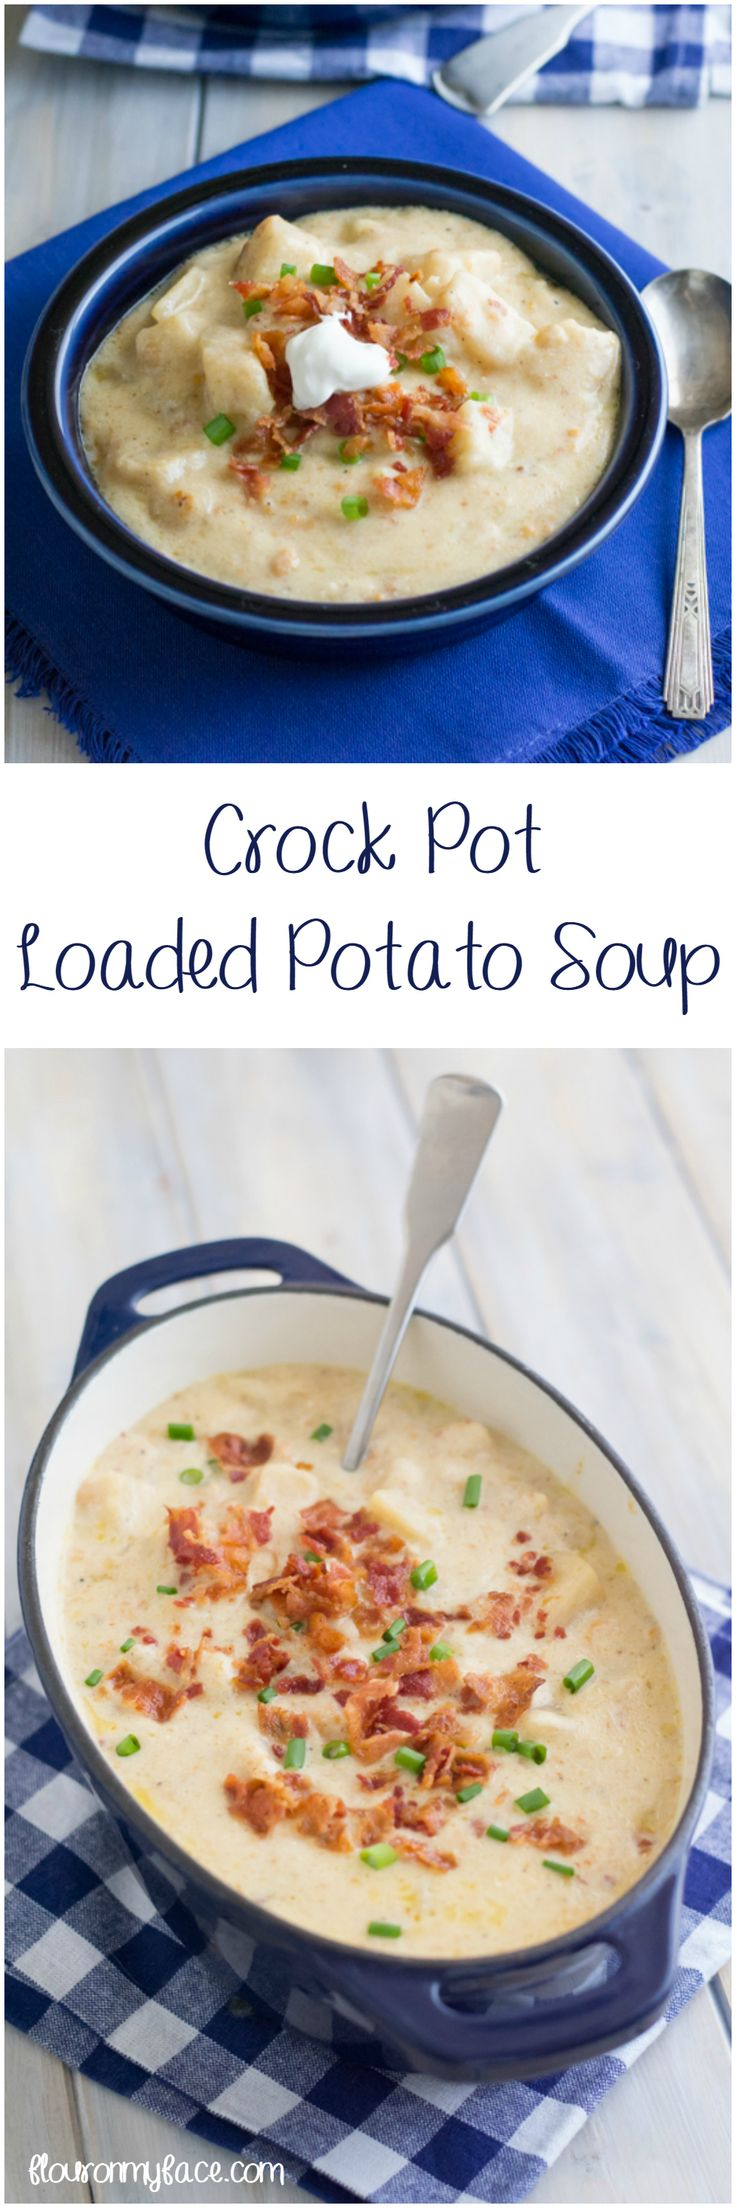 Crock Pot Loaded Potato Soup recipe is a perfect fall soup recipe the entire family will love via flouronmyface.com #crockpotfriday